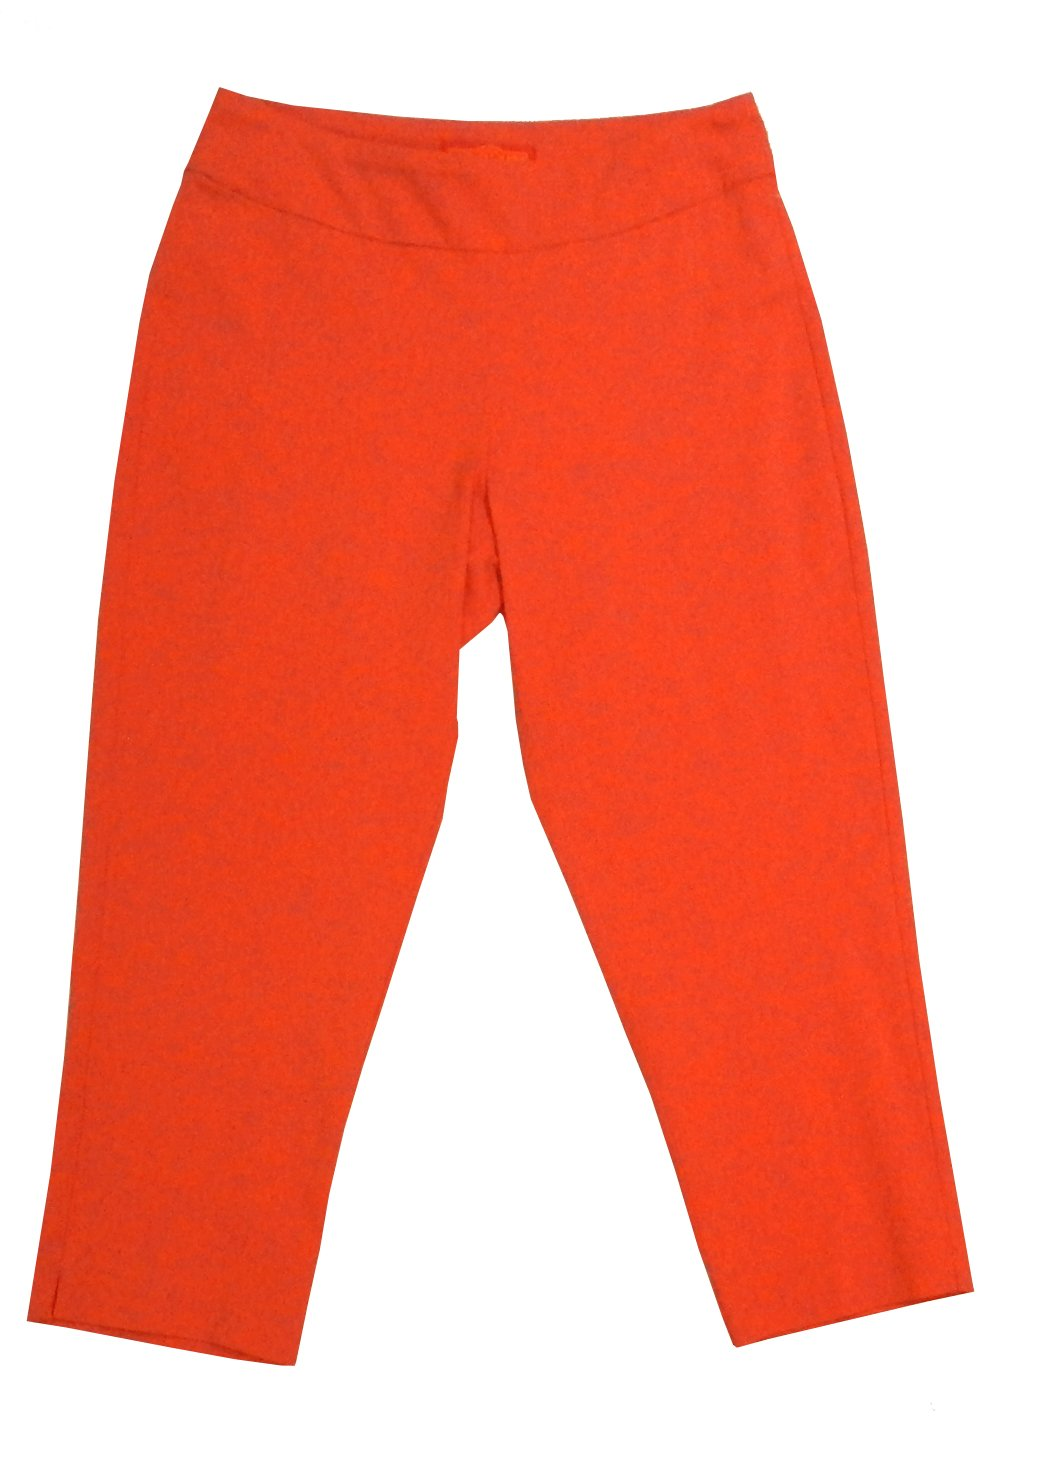 Krazy Larry Pull-on Cropped Pants (14, Tangerine)